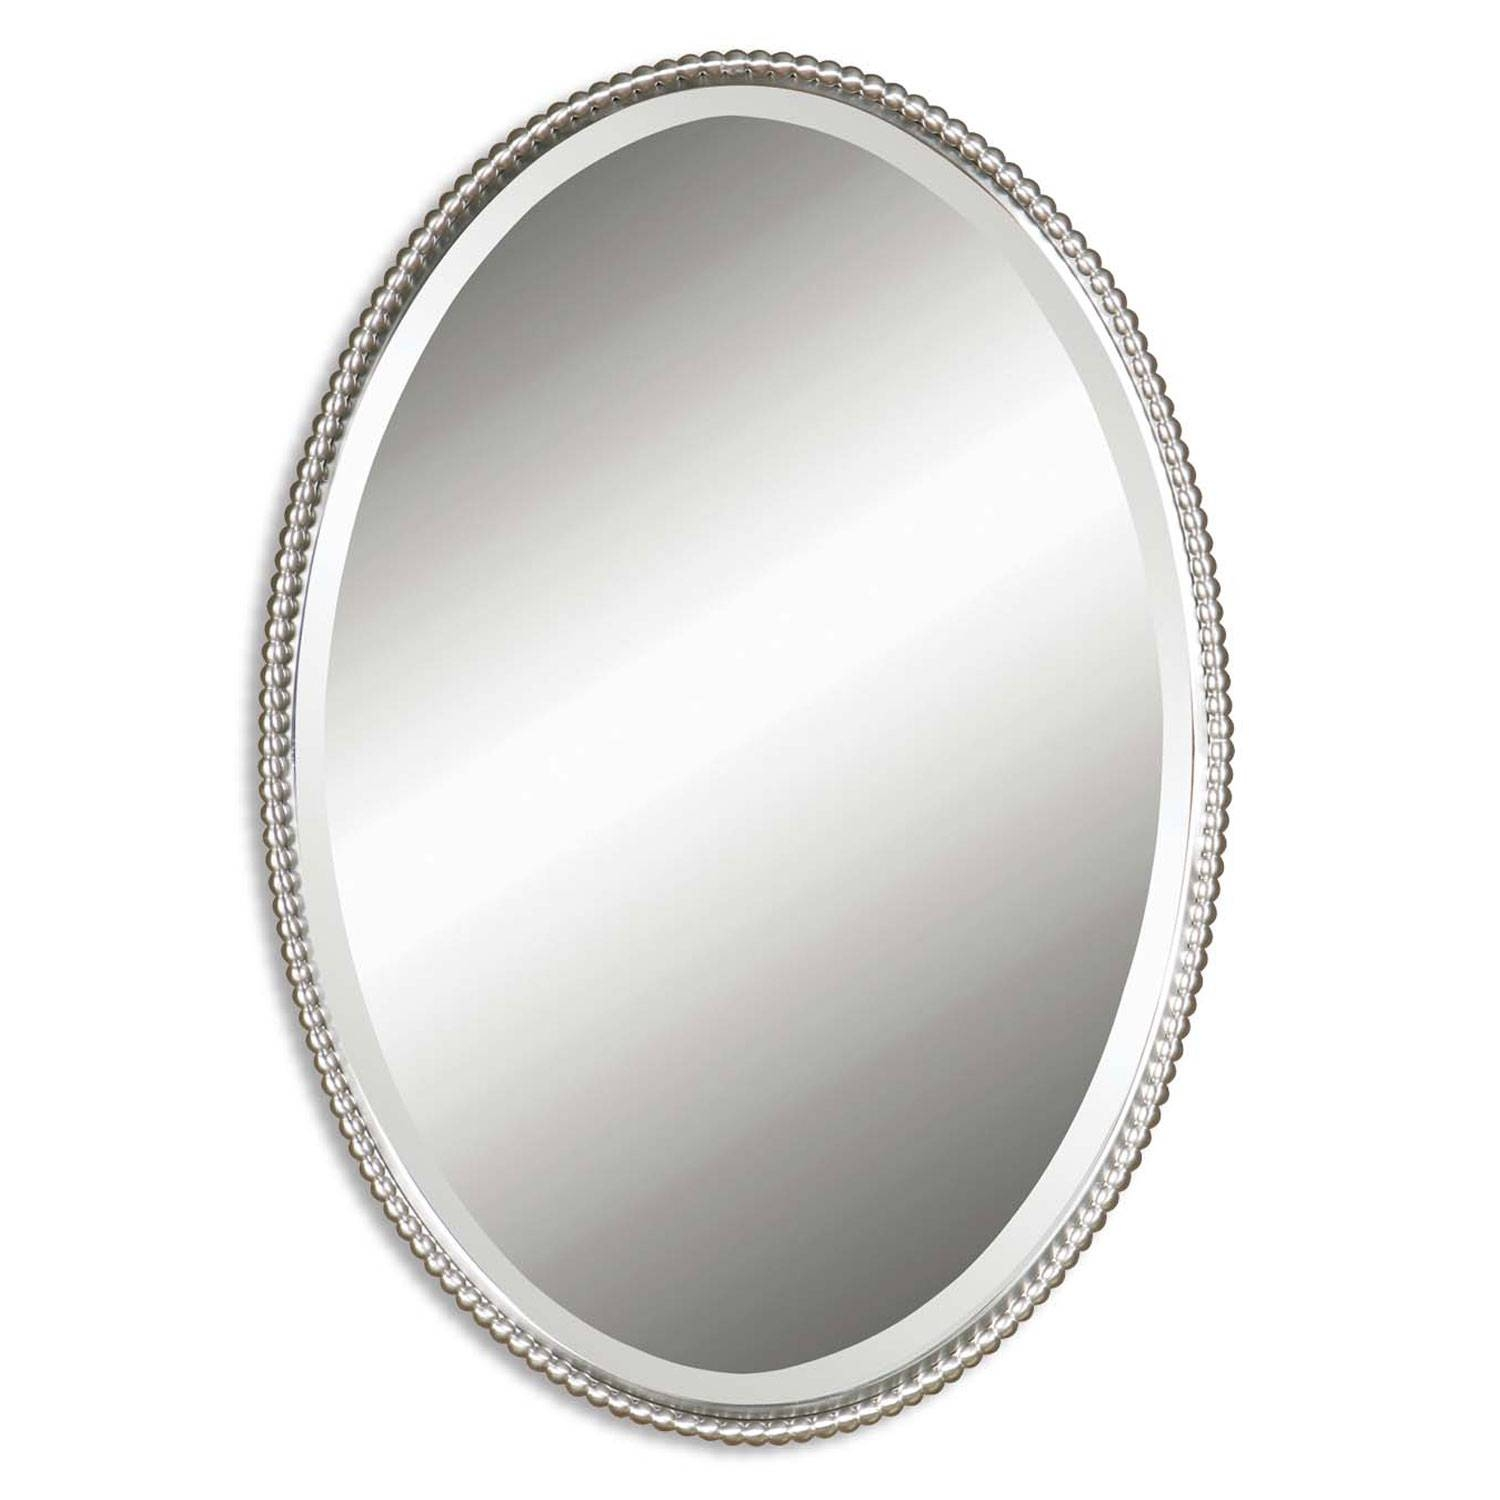 Sherise Brushed Nickel Oval Mirror Uttermost Wall Mirror Mirrors regarding White Oval Mirrors (Image 18 of 25)